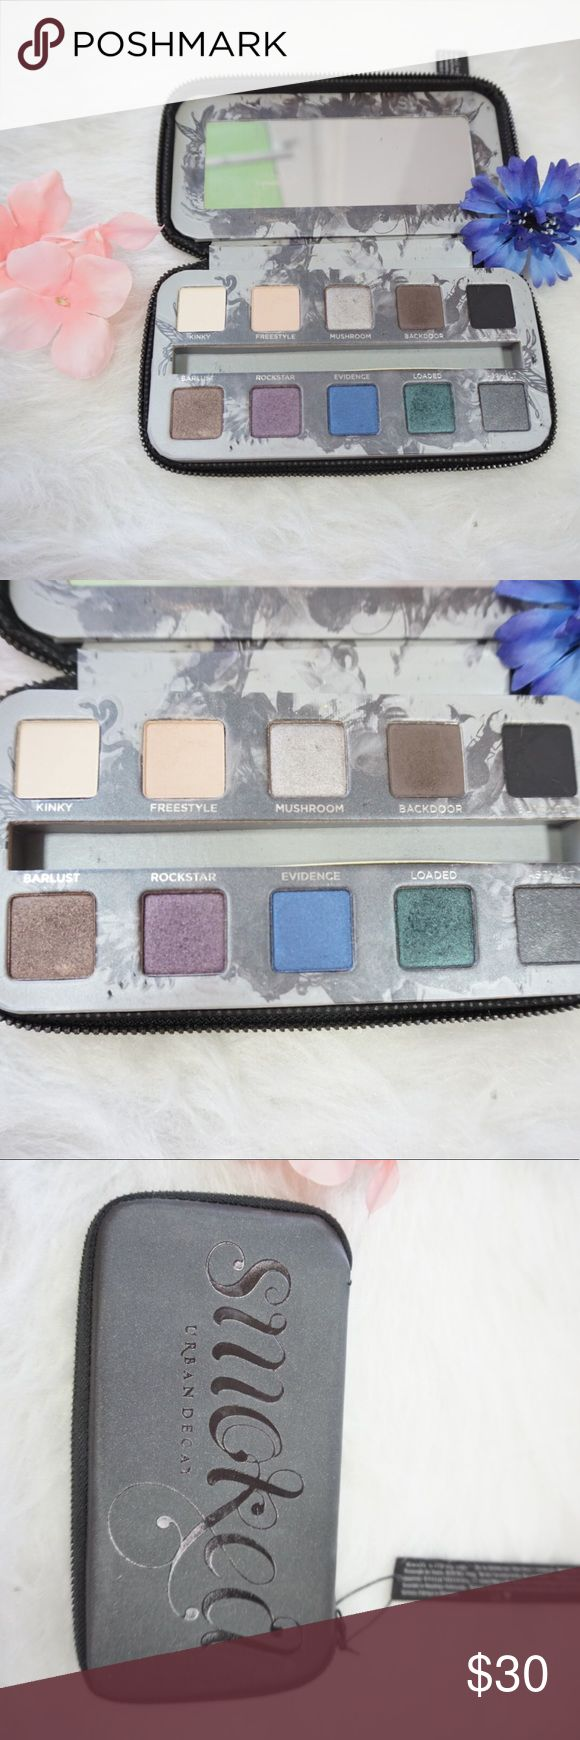 Urban Decay Smoked Palette Only swatched the colors. Never used and sanitized. Urban Decay Makeup Eyeshadow